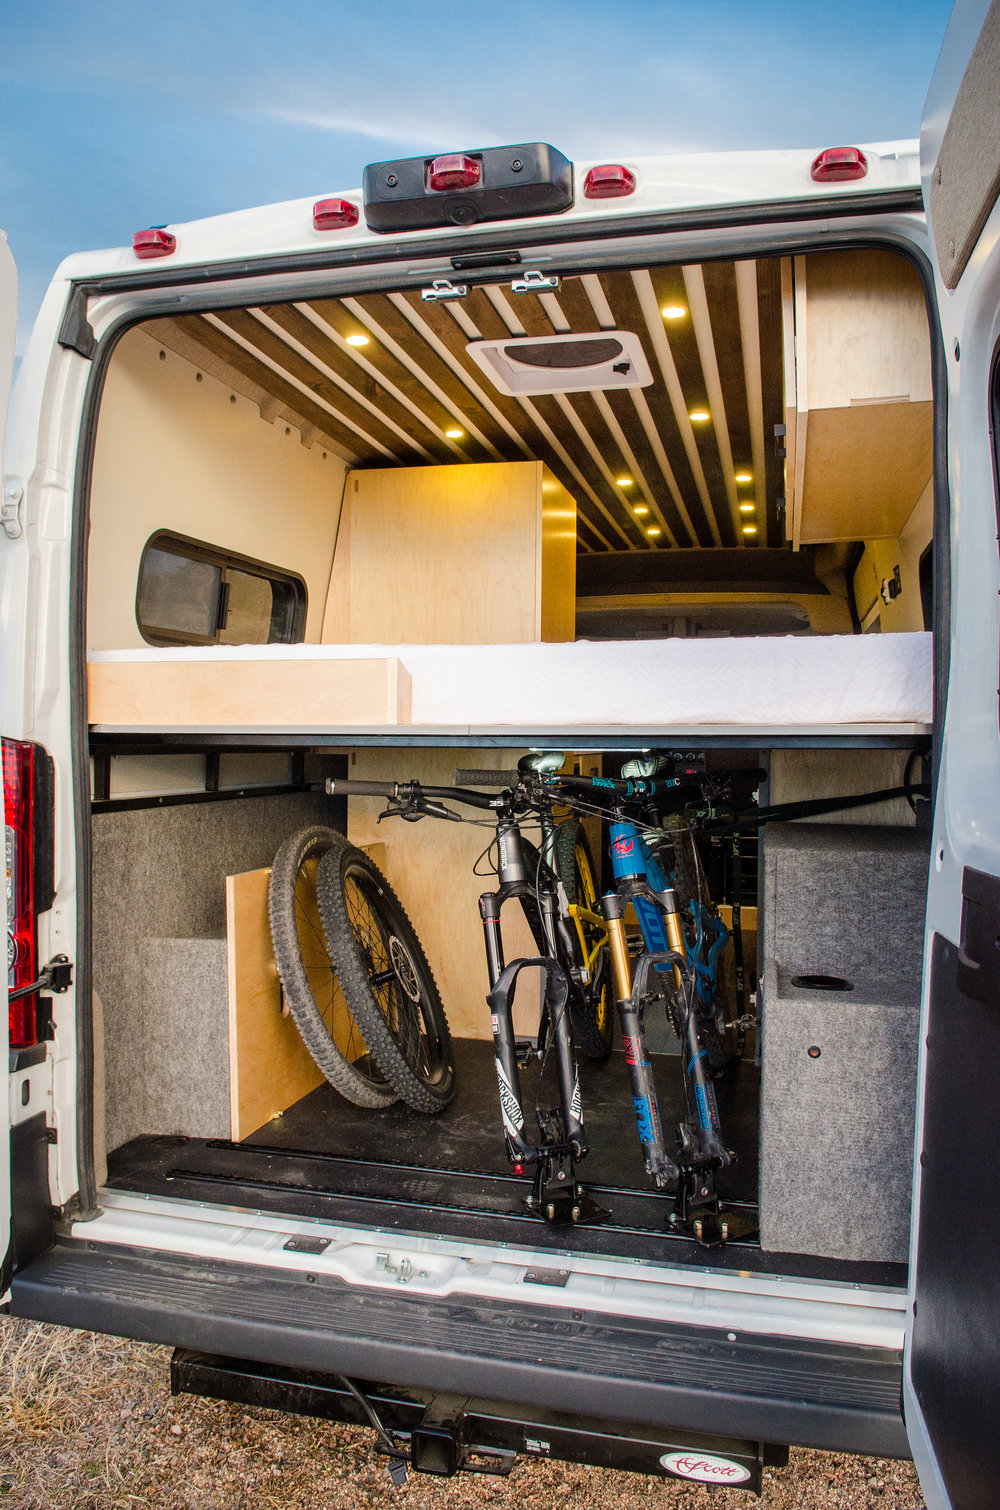 Mike S Promaster Vanlife Customs